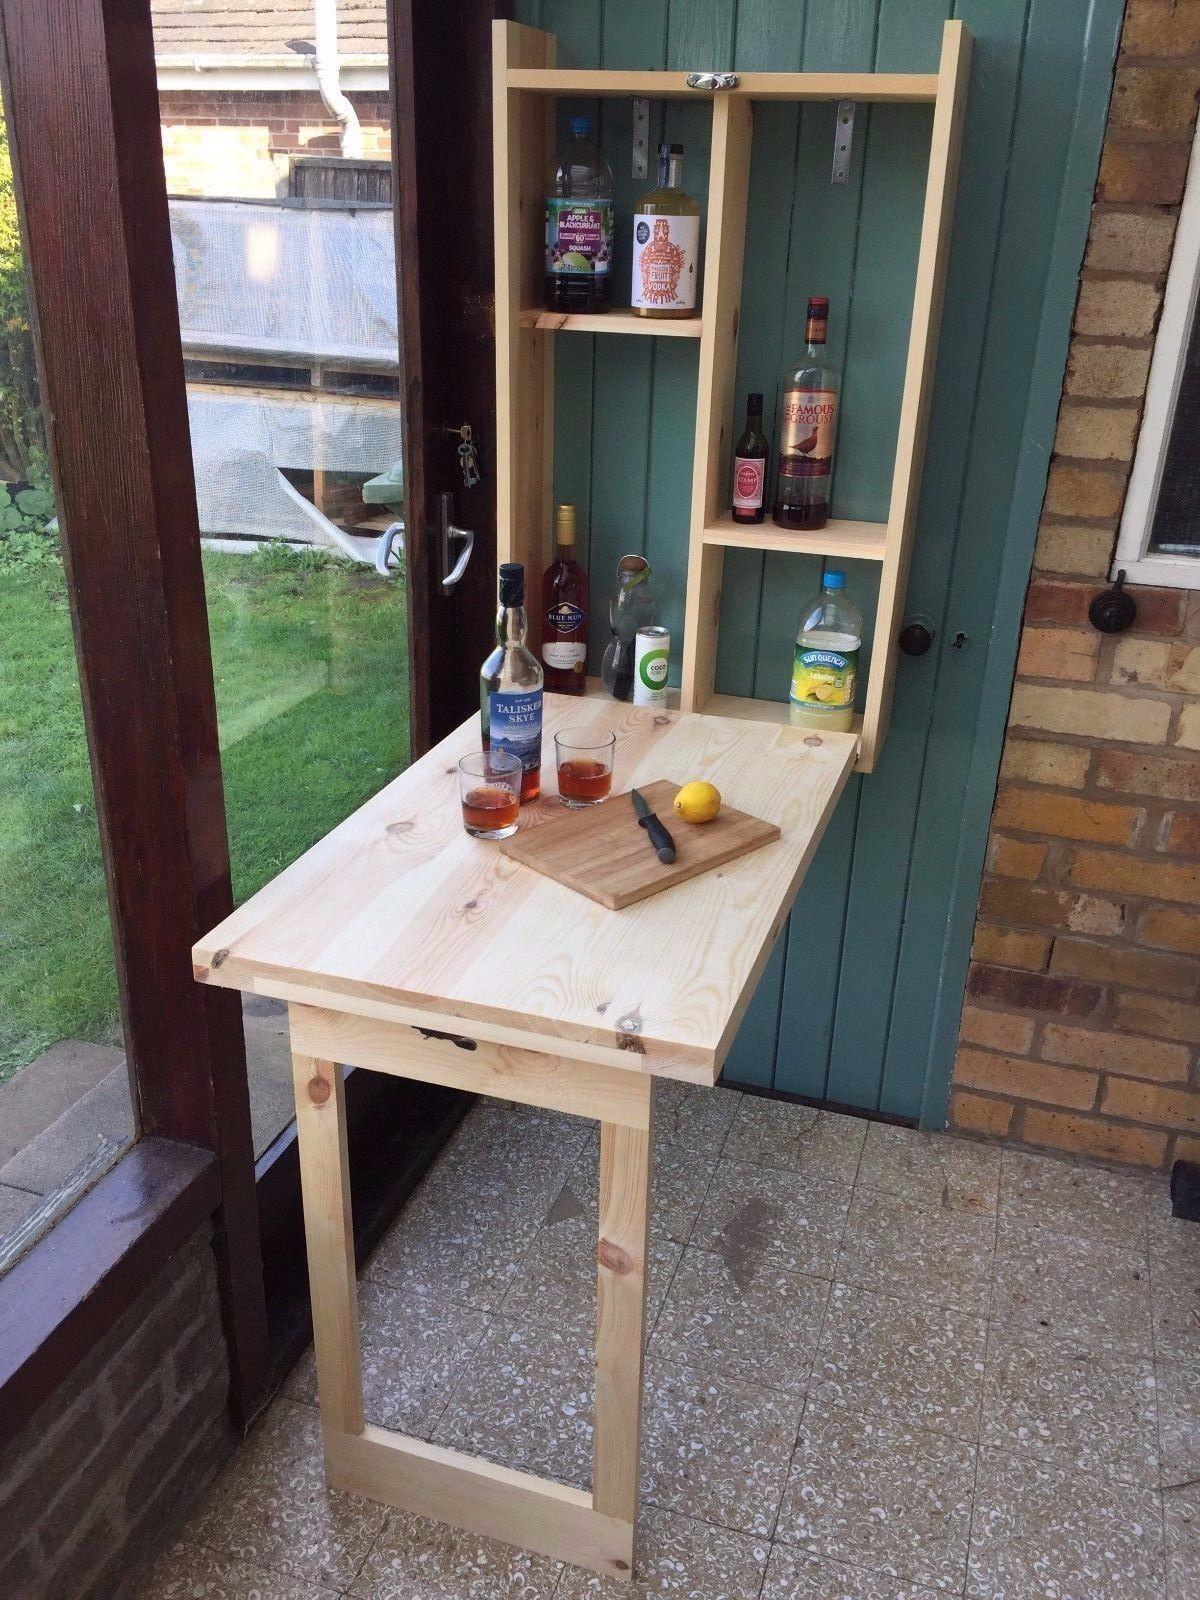 - Wall Mounted Fold Down Table / Murphy Bar £75 In NW9 London Für 75